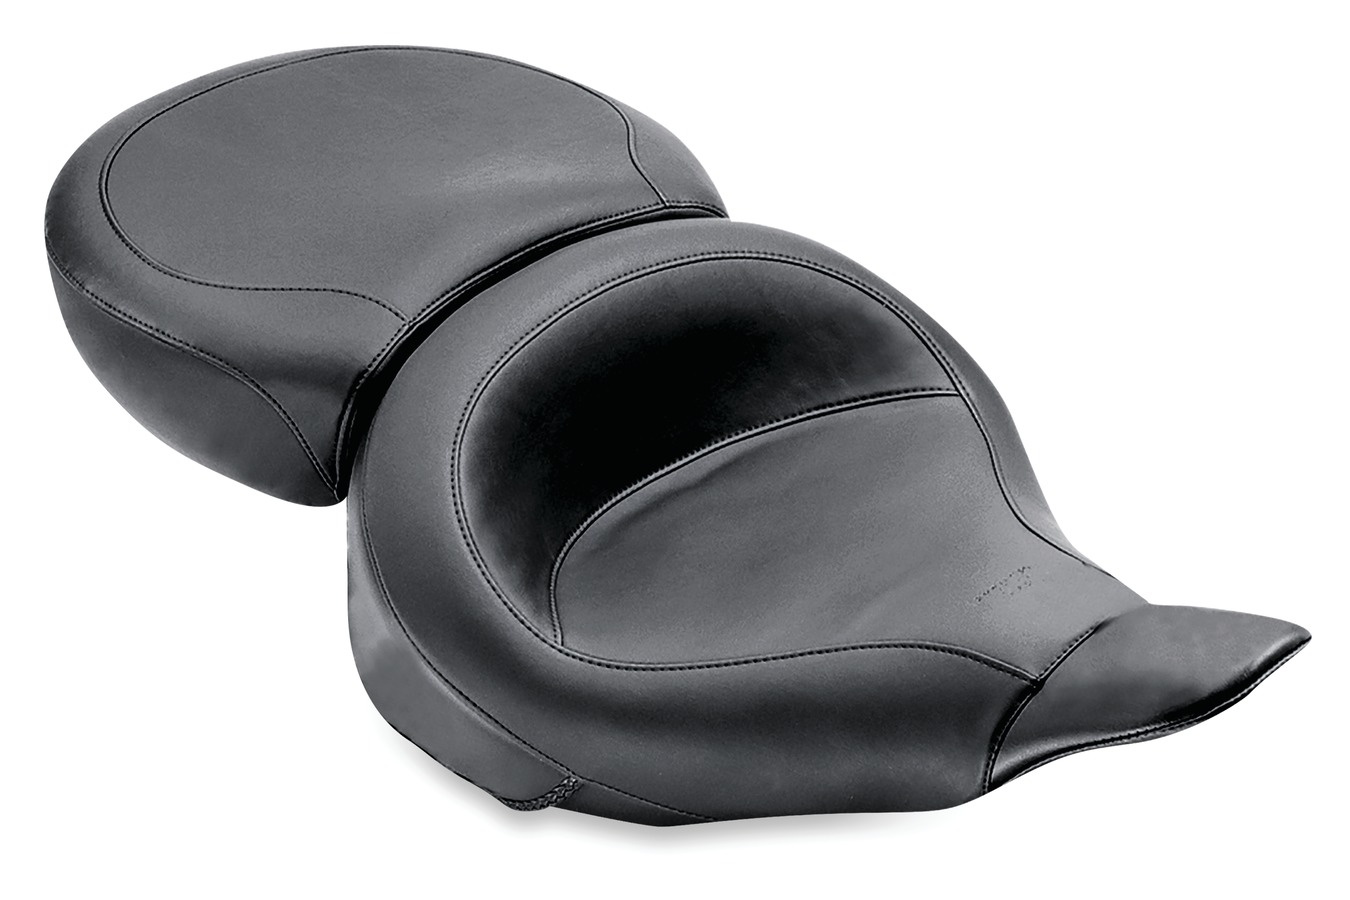 Wide Touring One-Piece Seat for Harley-Davidson Electra Glide & Tour Glide 1980-